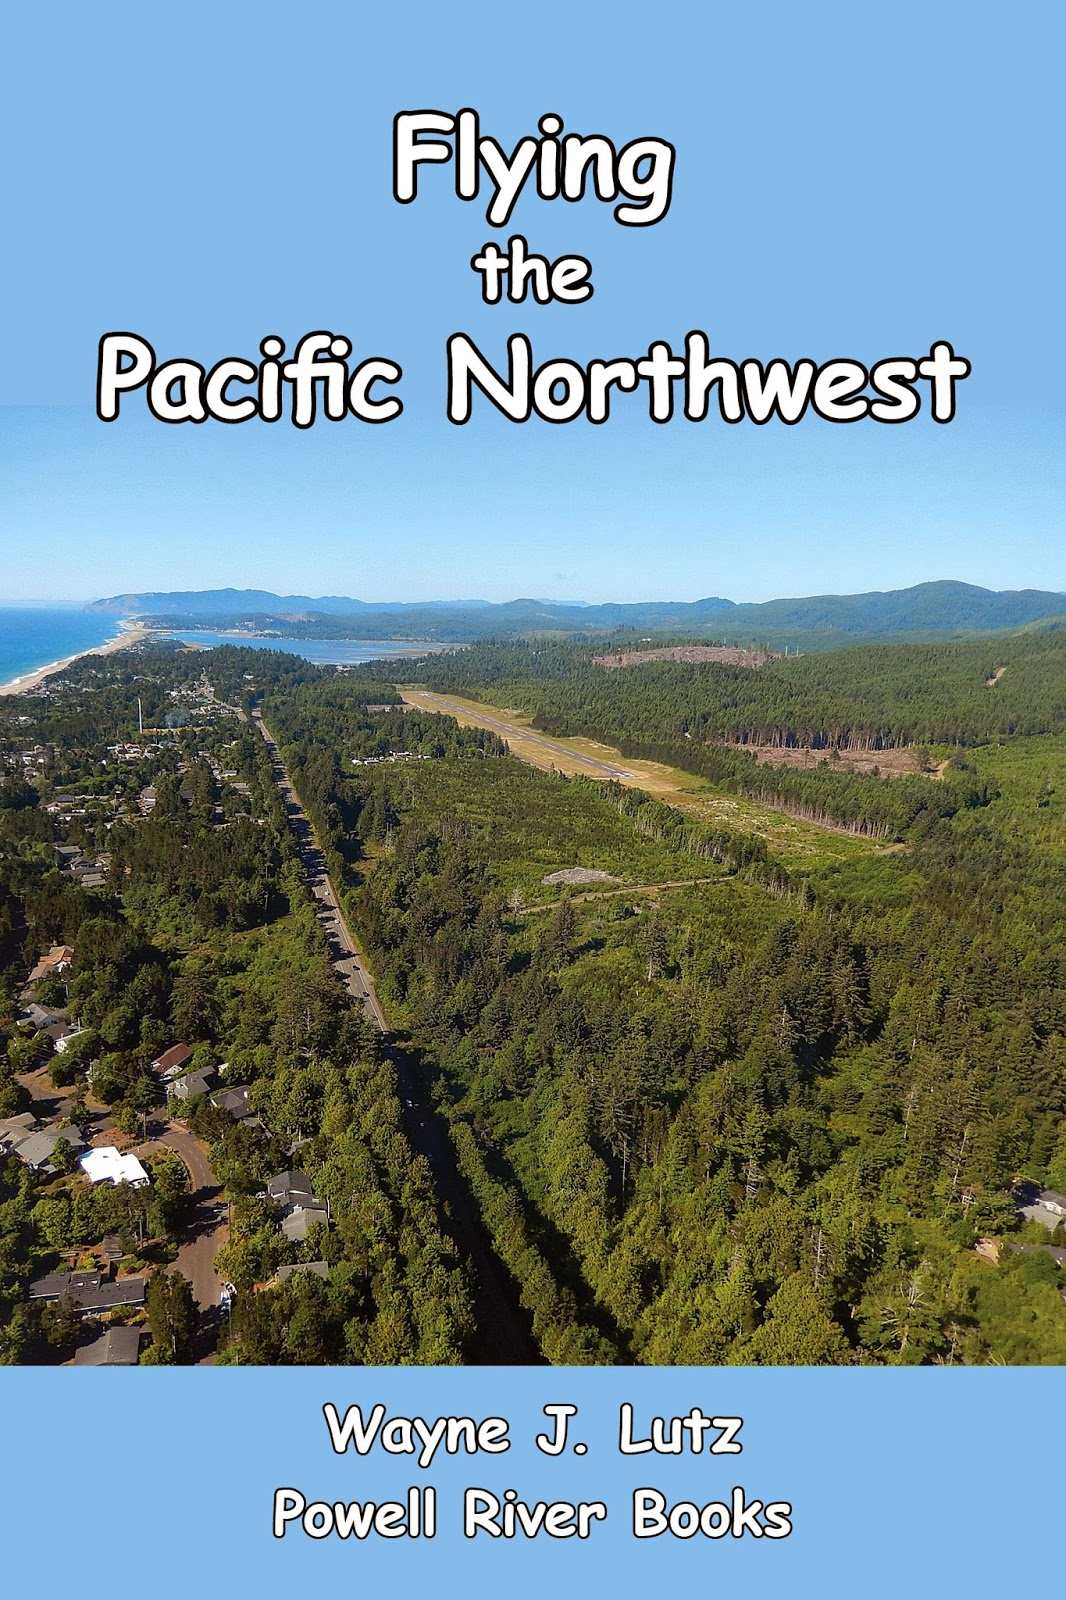 http://www.amazon.com/Flying-Pacific-Northwest-Wayne-Lutz-ebook/dp/B00ET5OVL6